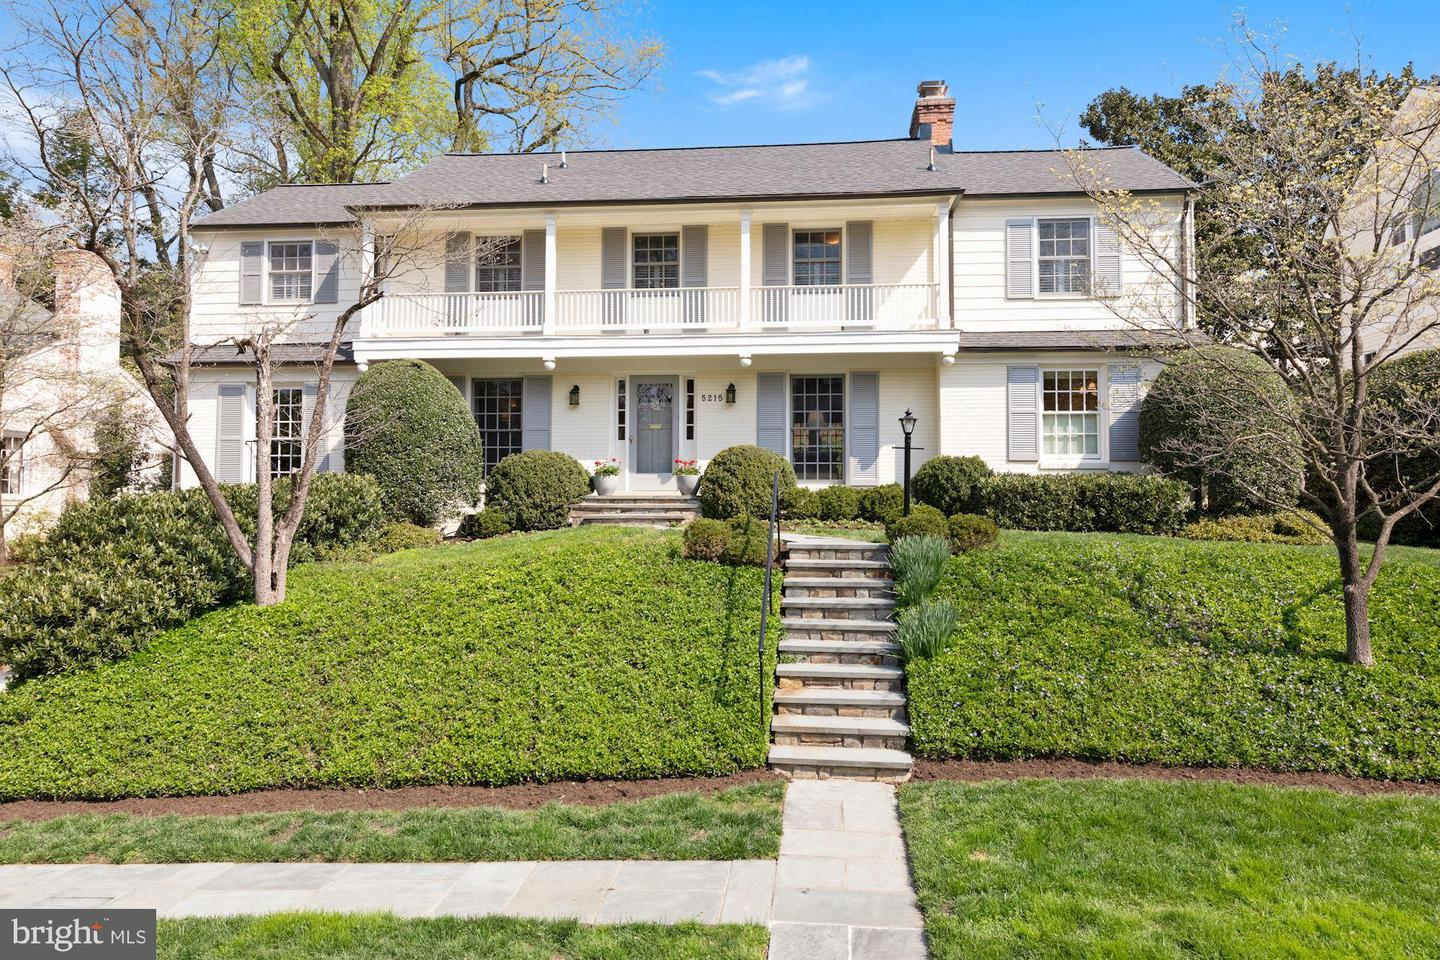 5215 FALMOUTH RD, BETHESDA, Maryland 20816, 5 Bedrooms Bedrooms, ,6 BathroomsBathrooms,Single Family,For Sale,5215 FALMOUTH RD,MDMC751982